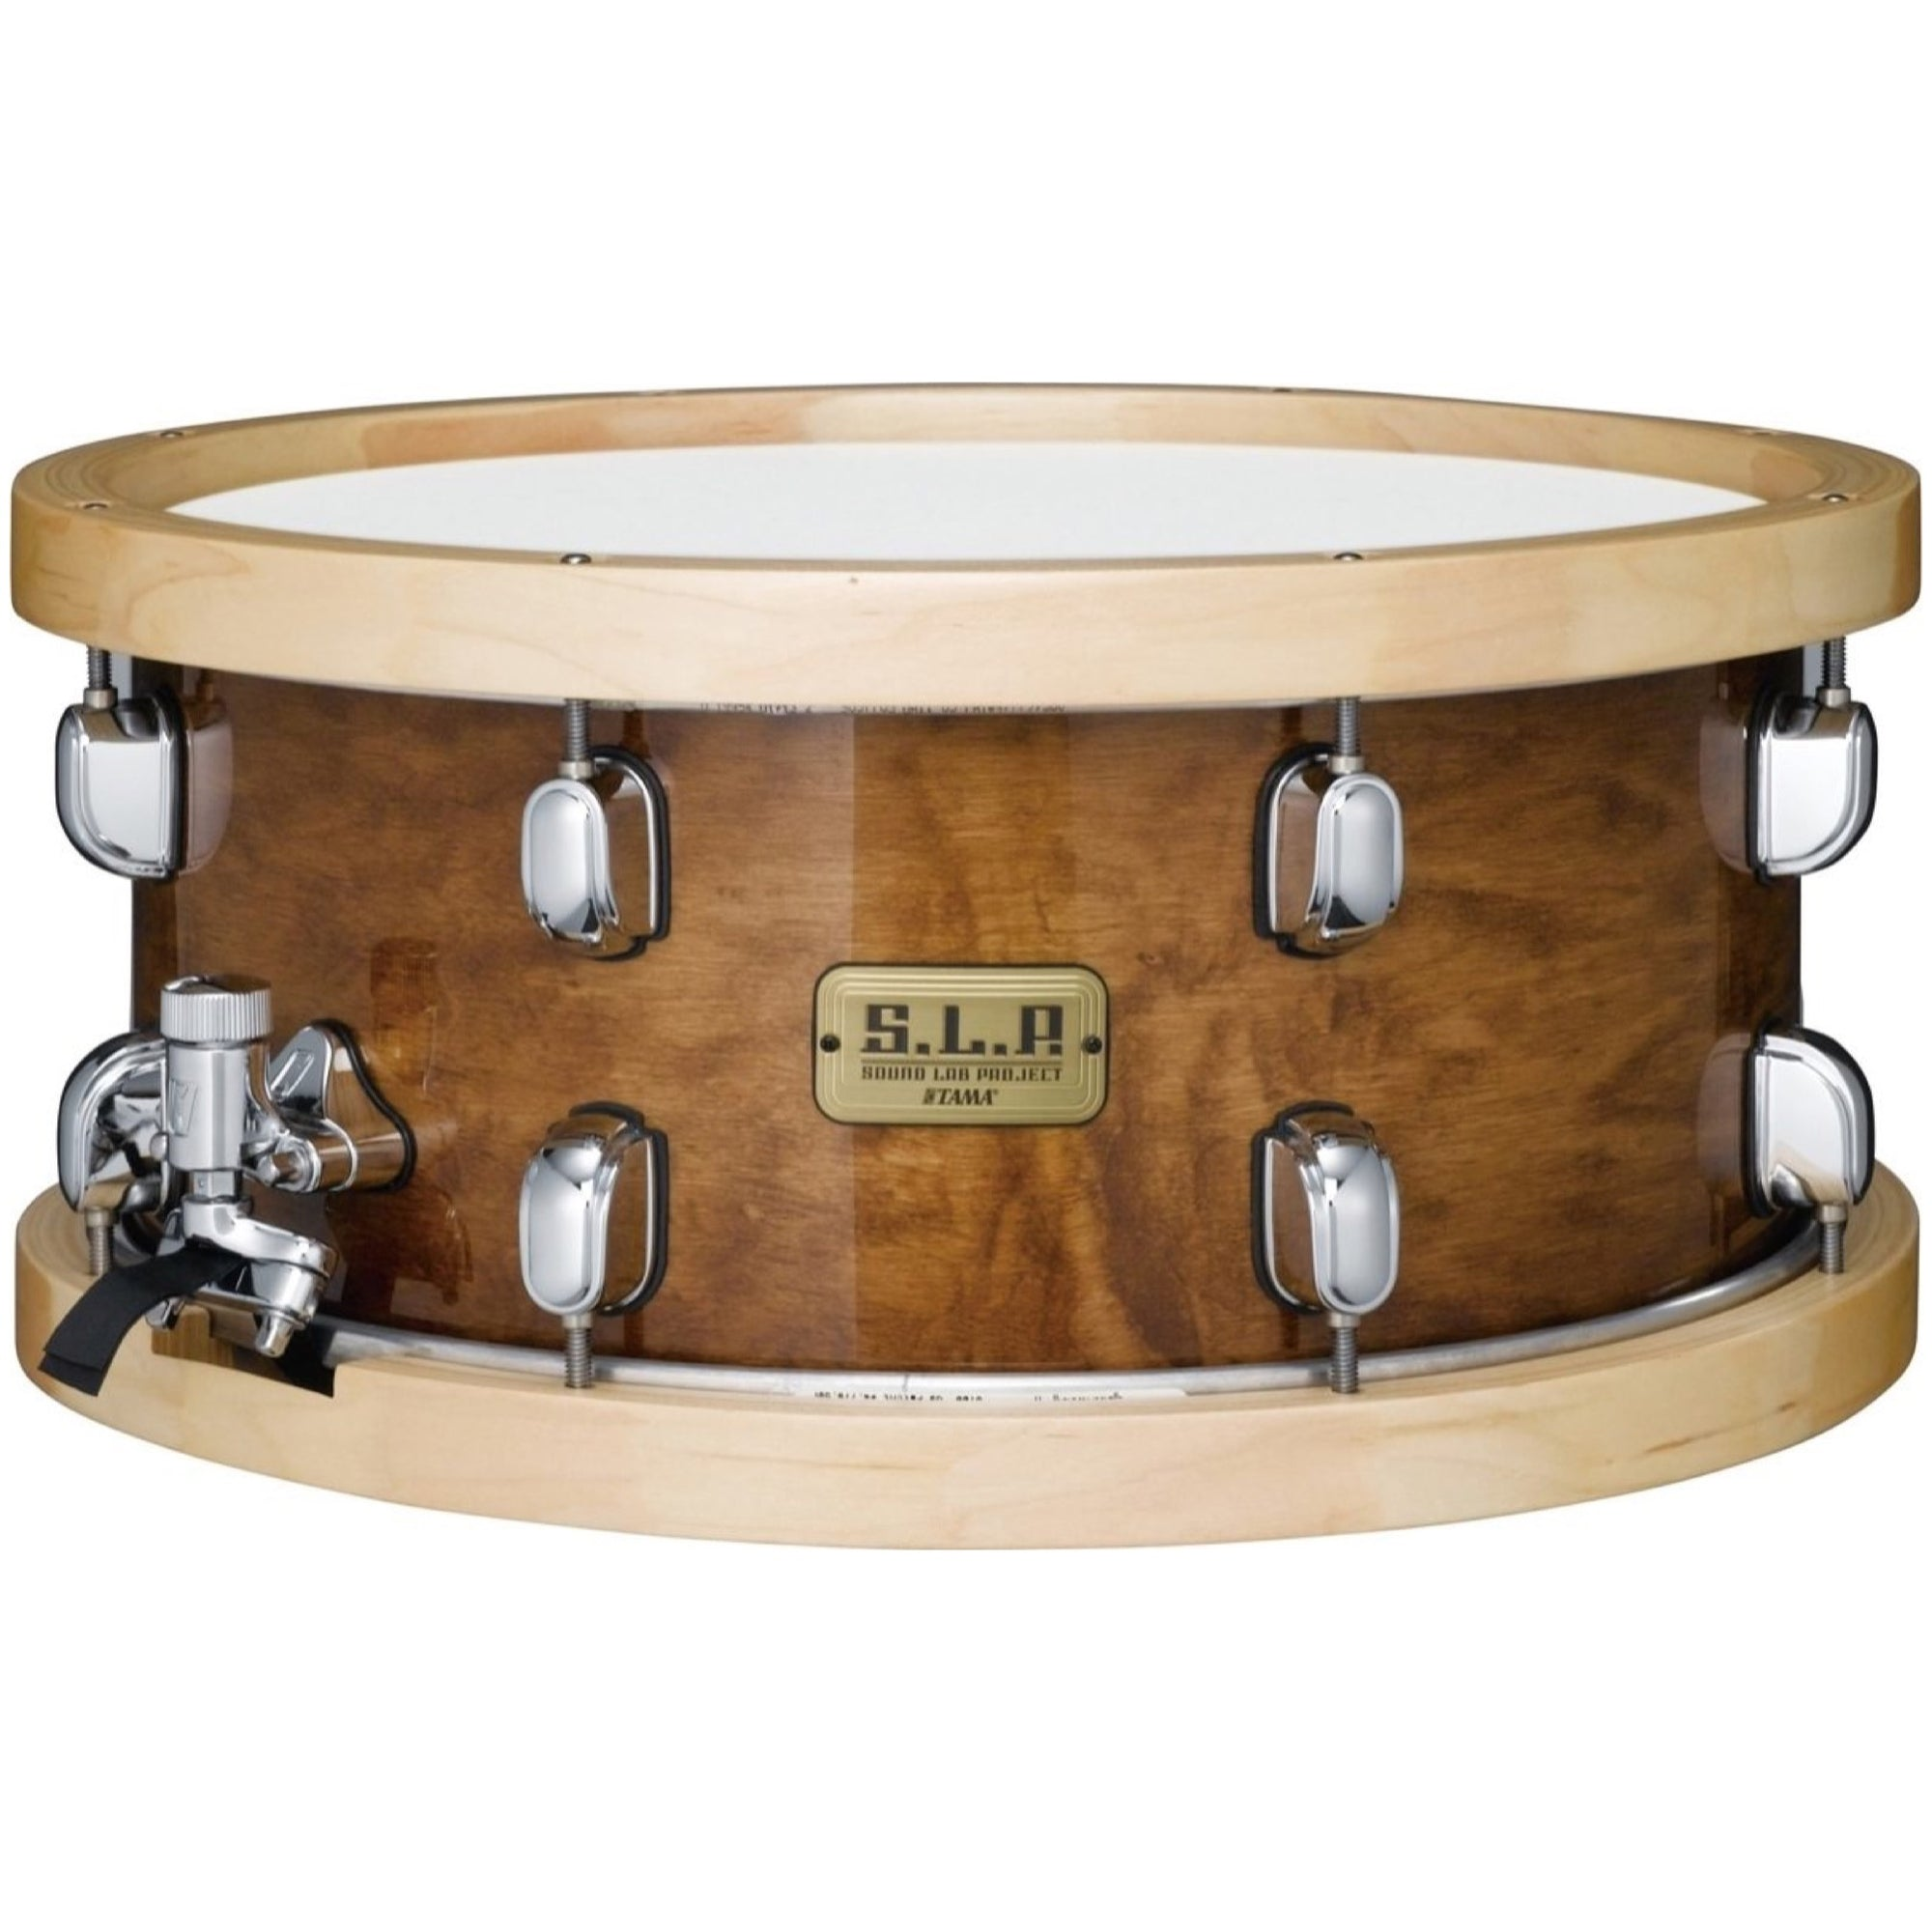 Tama SLP Maple Sienna Snare Drum, with Snare Drum Bag, 6.5x14 Inch